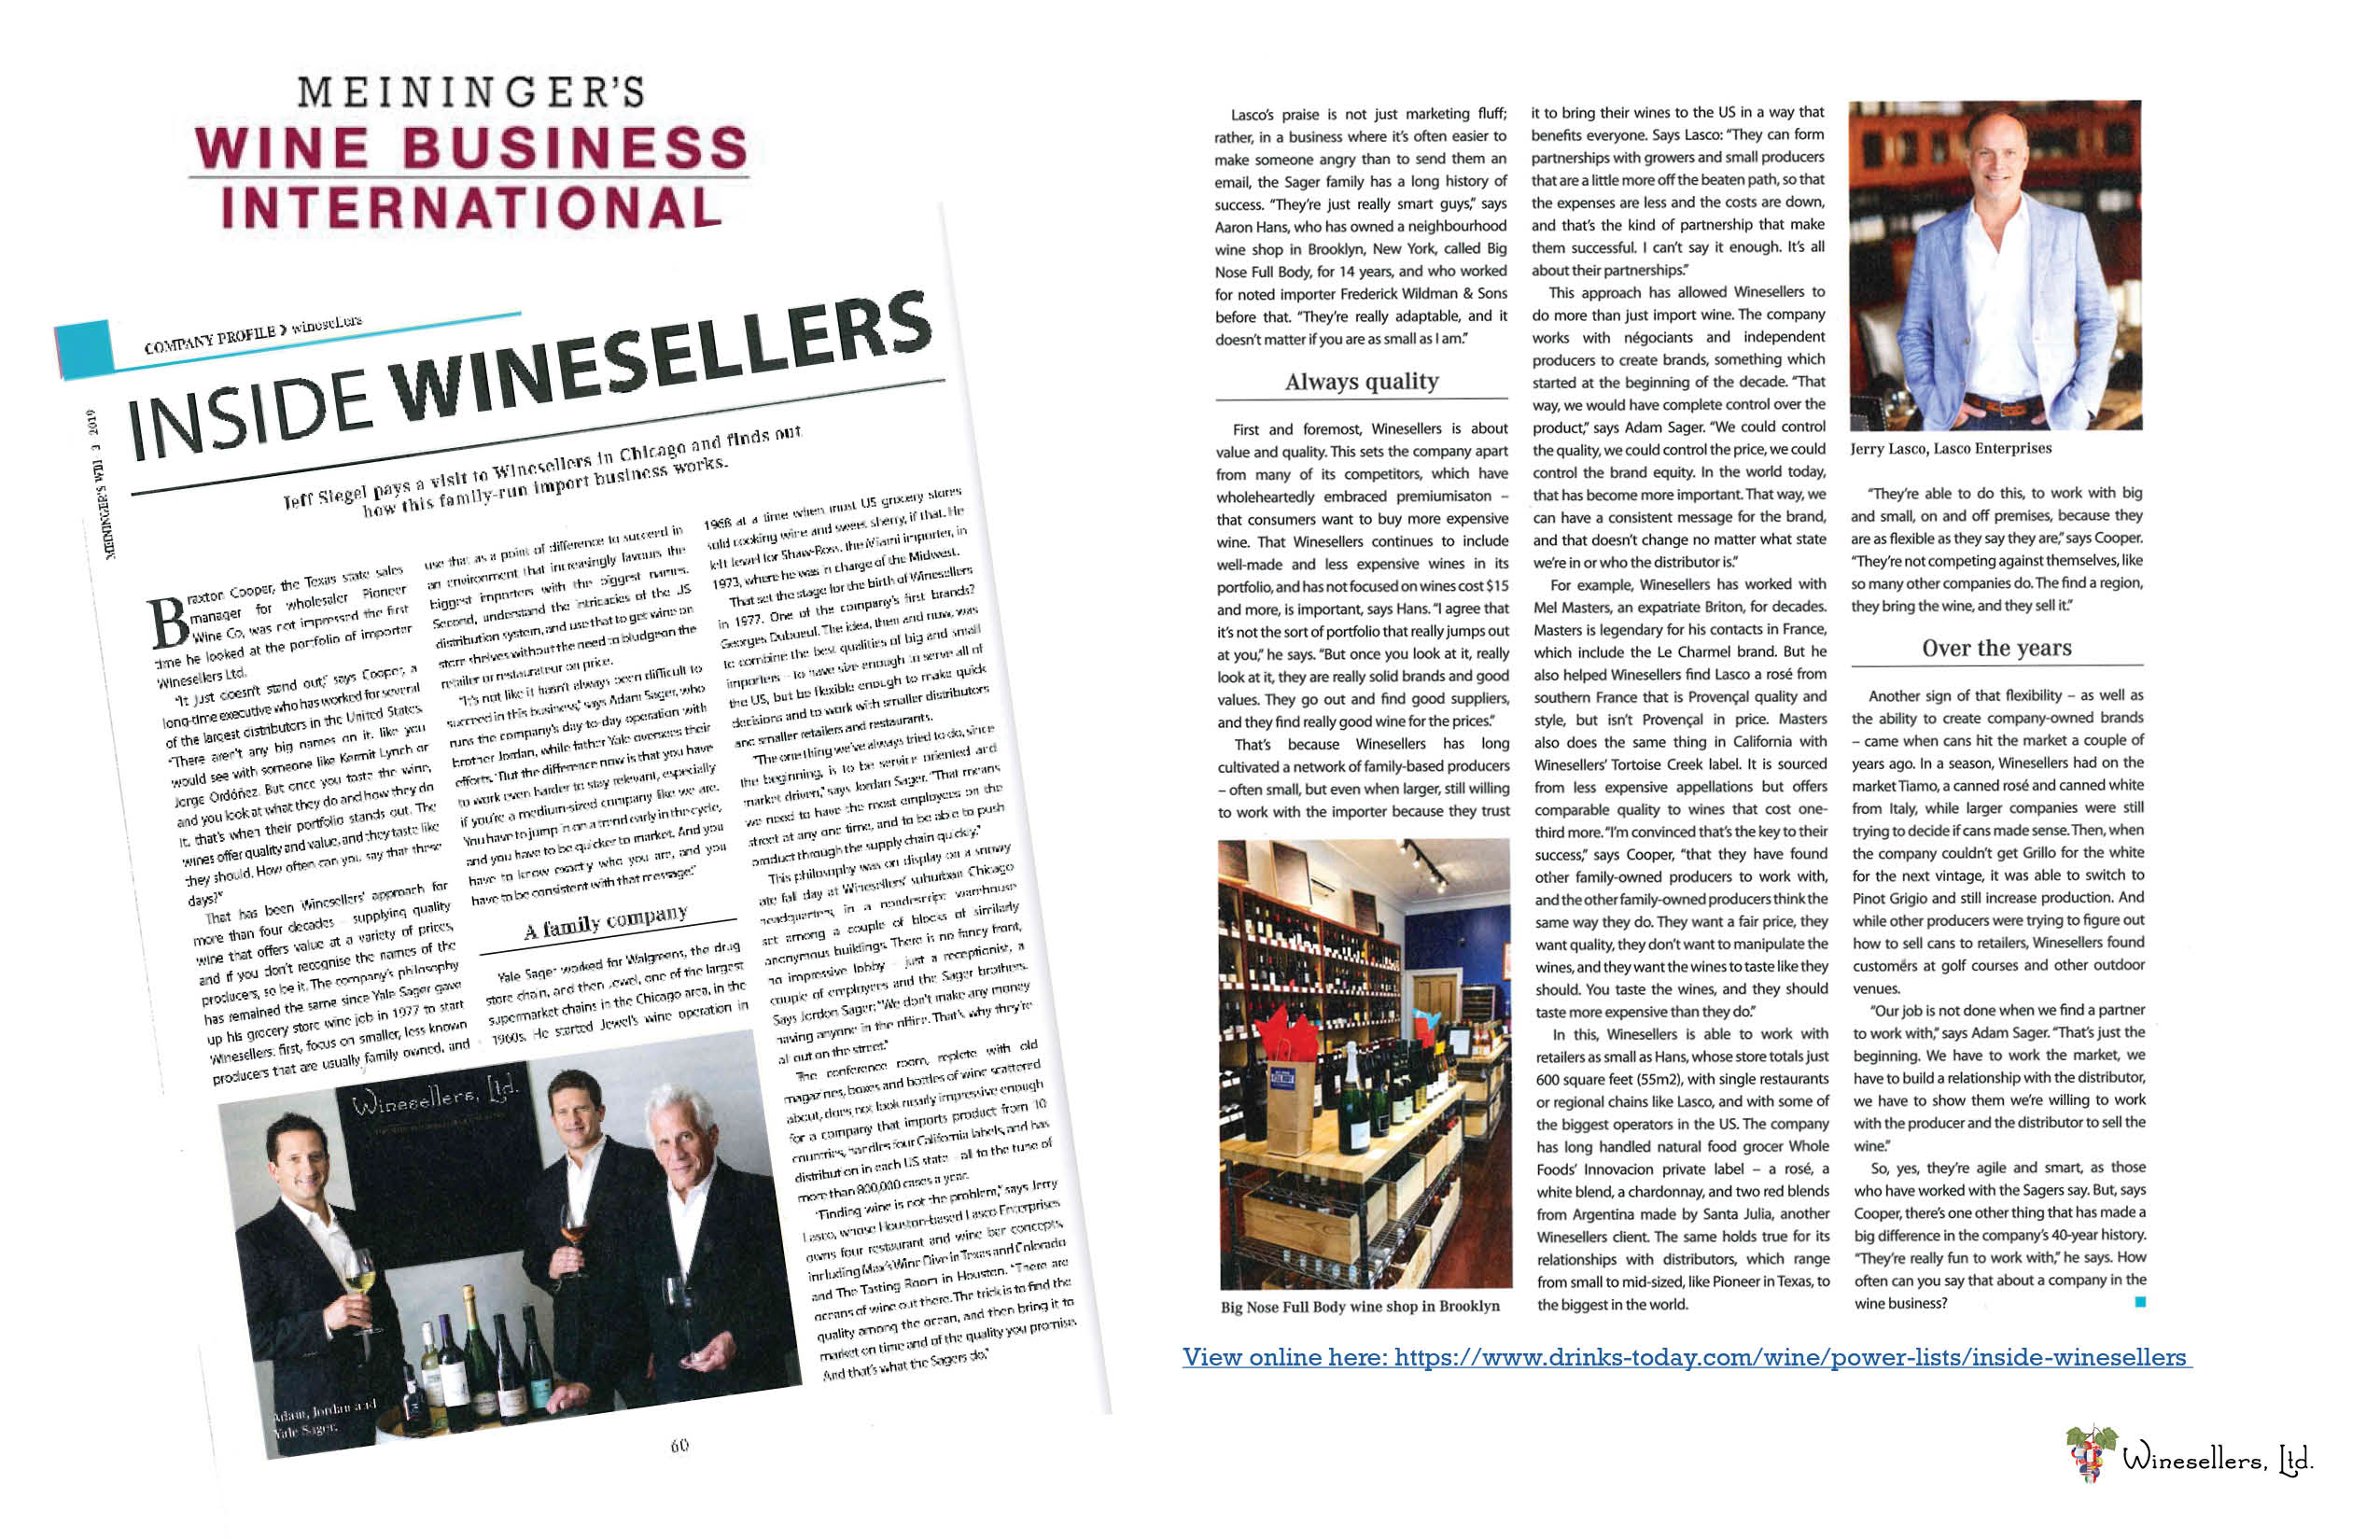 Inside Winesellers, Ltd.